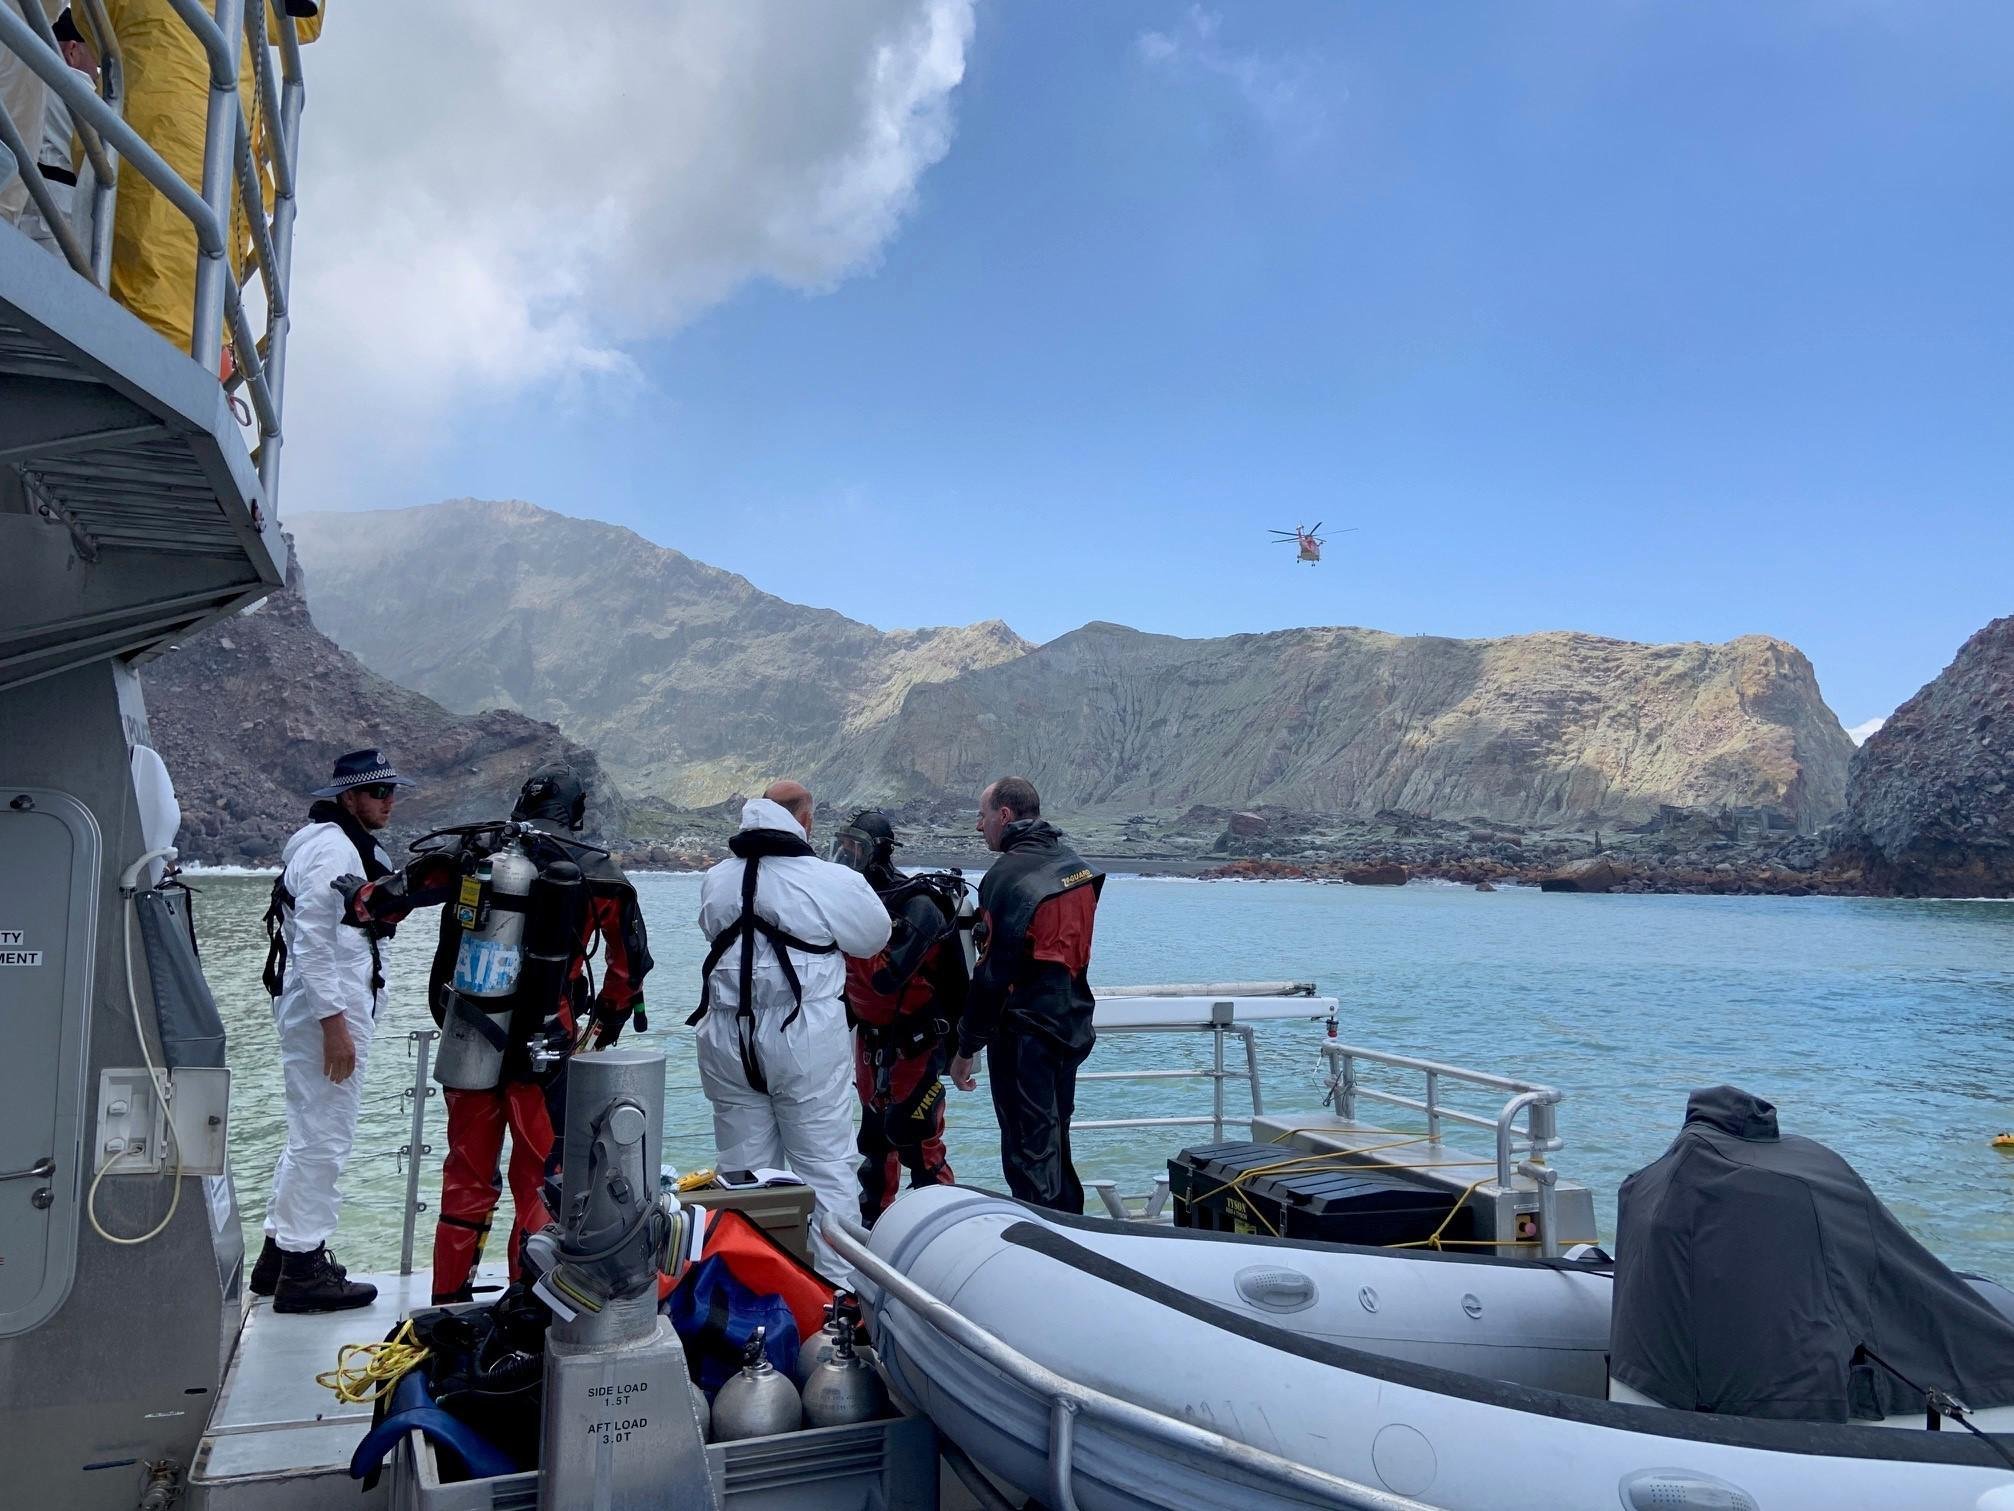 Divers Search Contaminated Water For Body Of New Zealand Volcano Victim